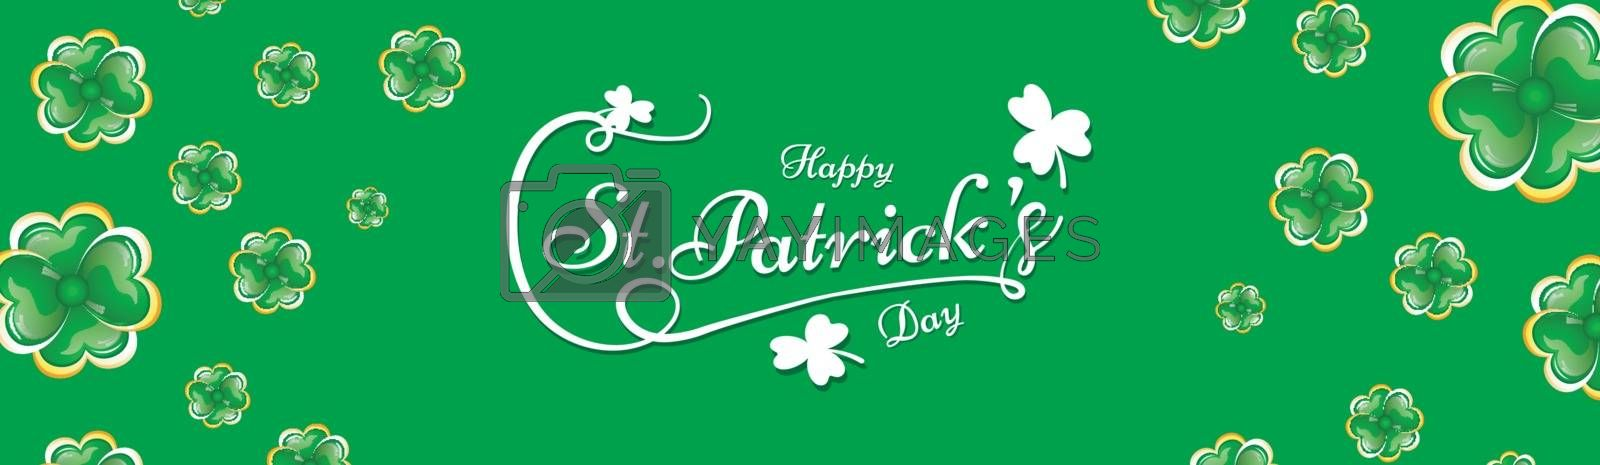 Royalty free image of Calligraphy of St Patrick's Day on green background decorated wi by aispl